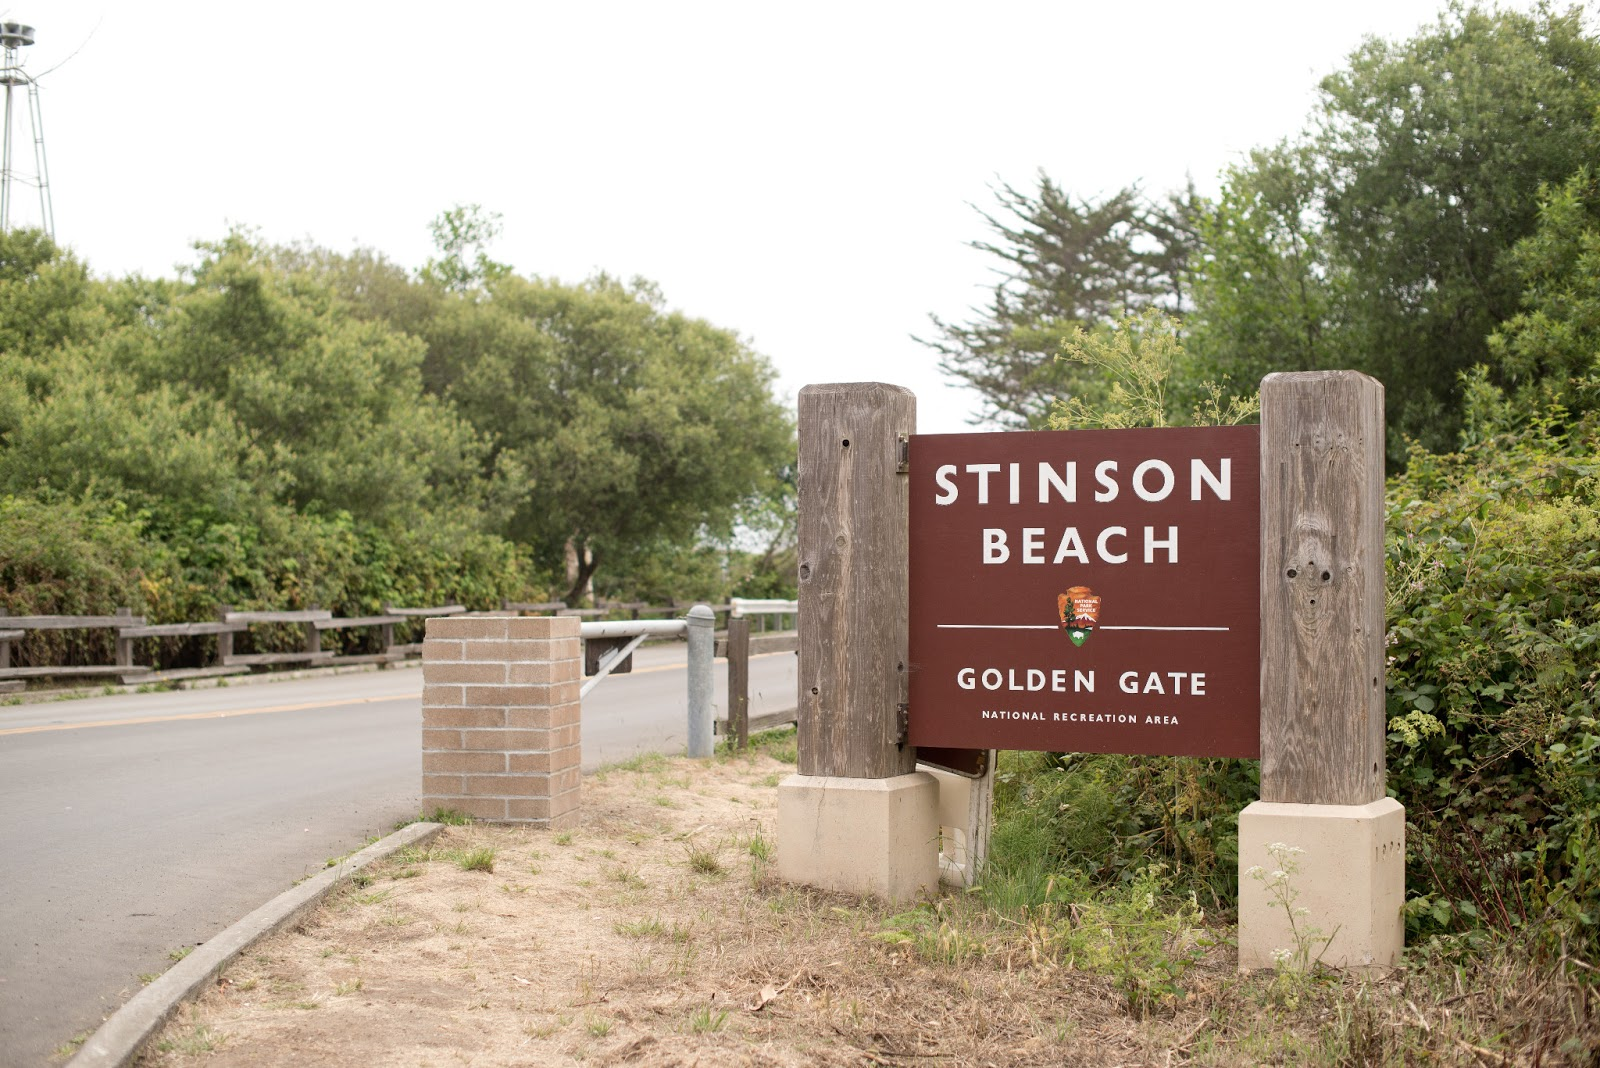 At Least Once A Year We Try To Take Day Trip Stinson Beach It Is Located In The Bay Area Near San Francisco And About Two Hour Drive